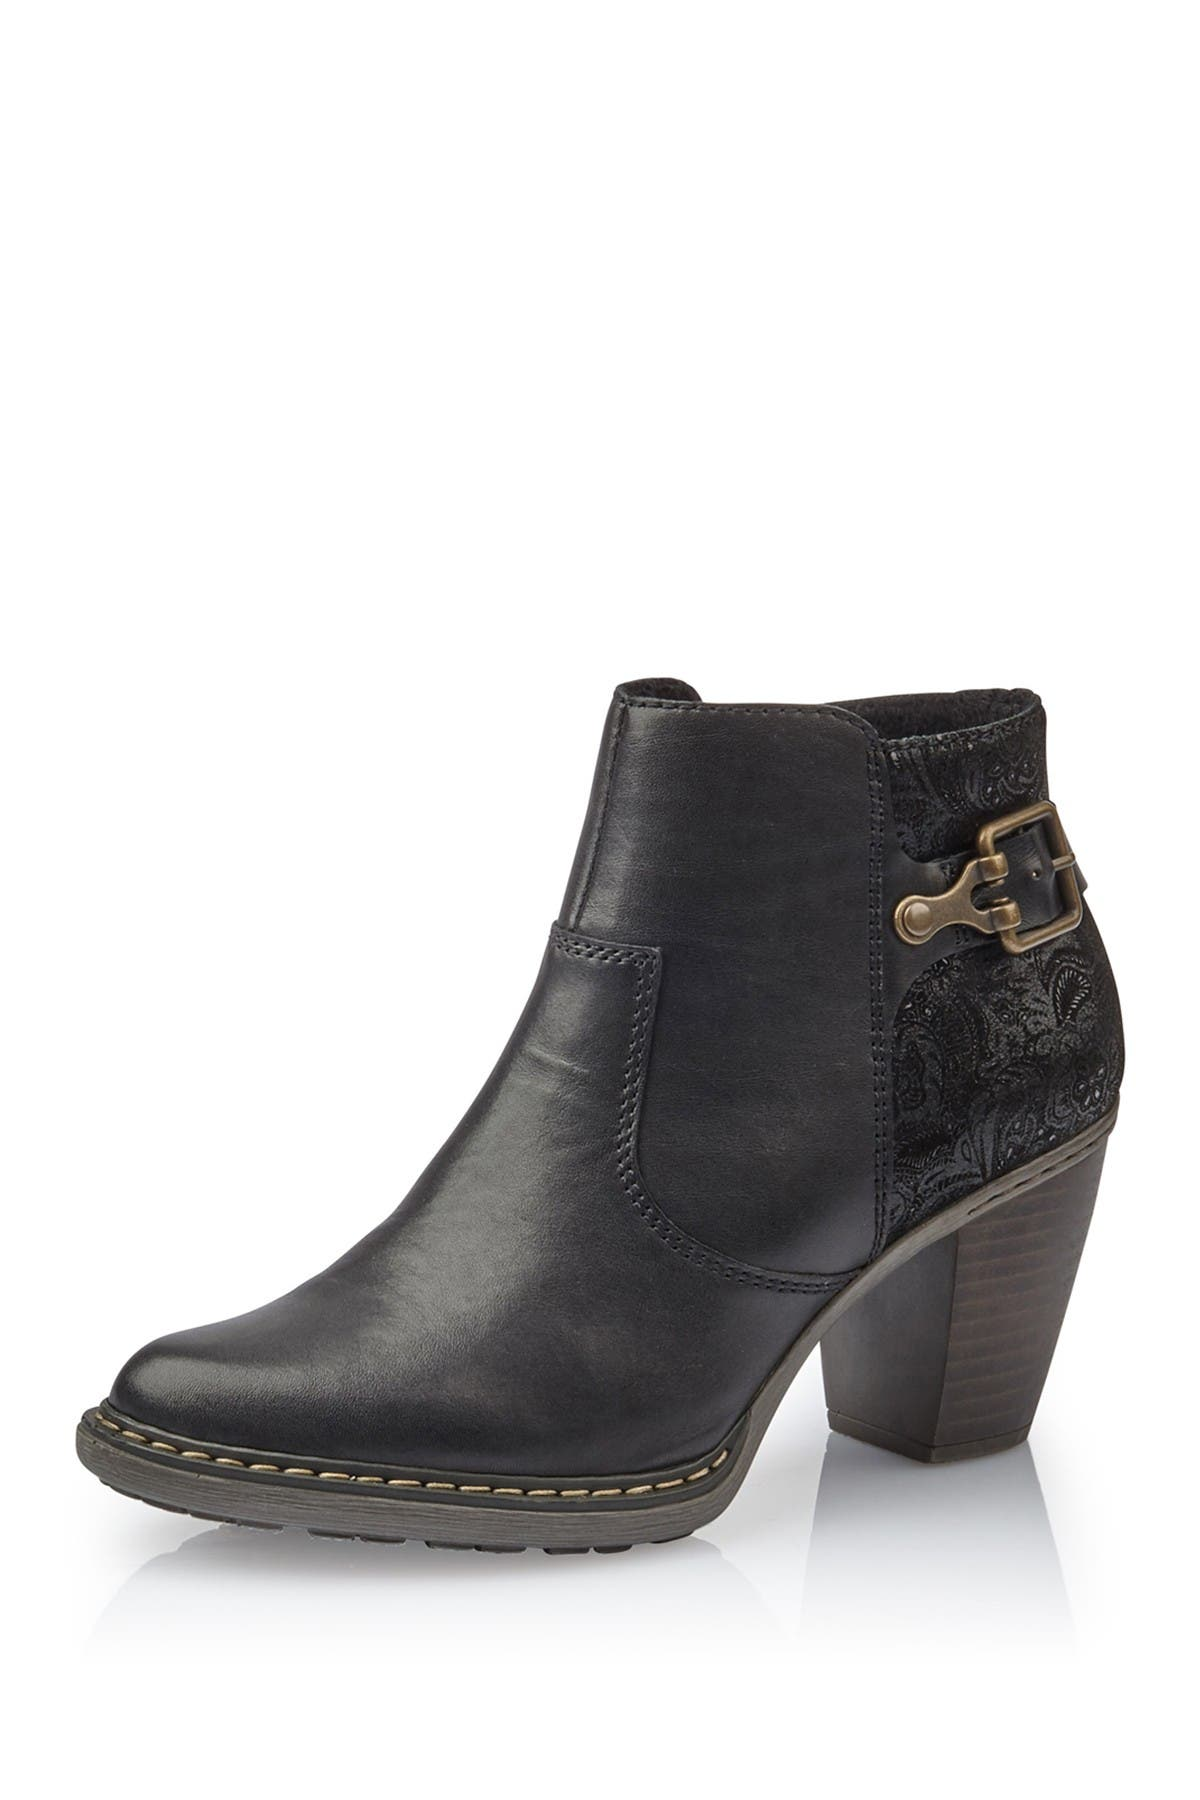 Image of Rieker Paige Leather Block Heel Boot